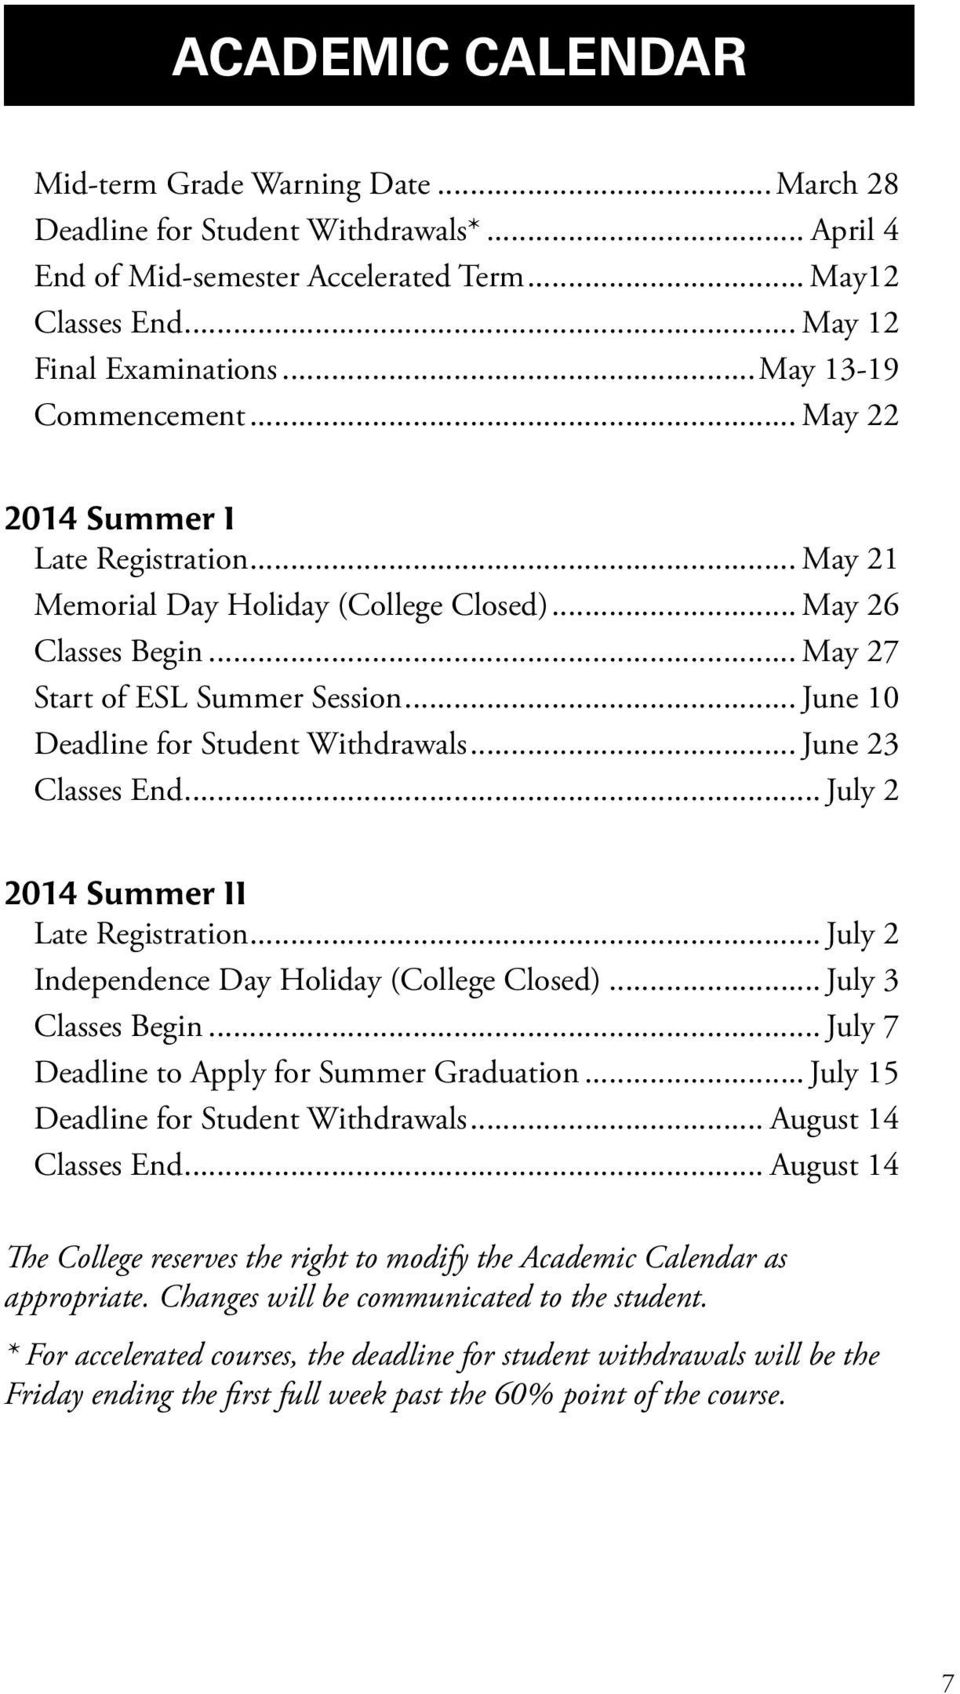 .. June 10 Deadline for Student Withdrawals... June 23 Classes End... July 2 2014 Summer II Late Registration... July 2 Independence Day Holiday (College Closed)... July 3 Classes Begin.